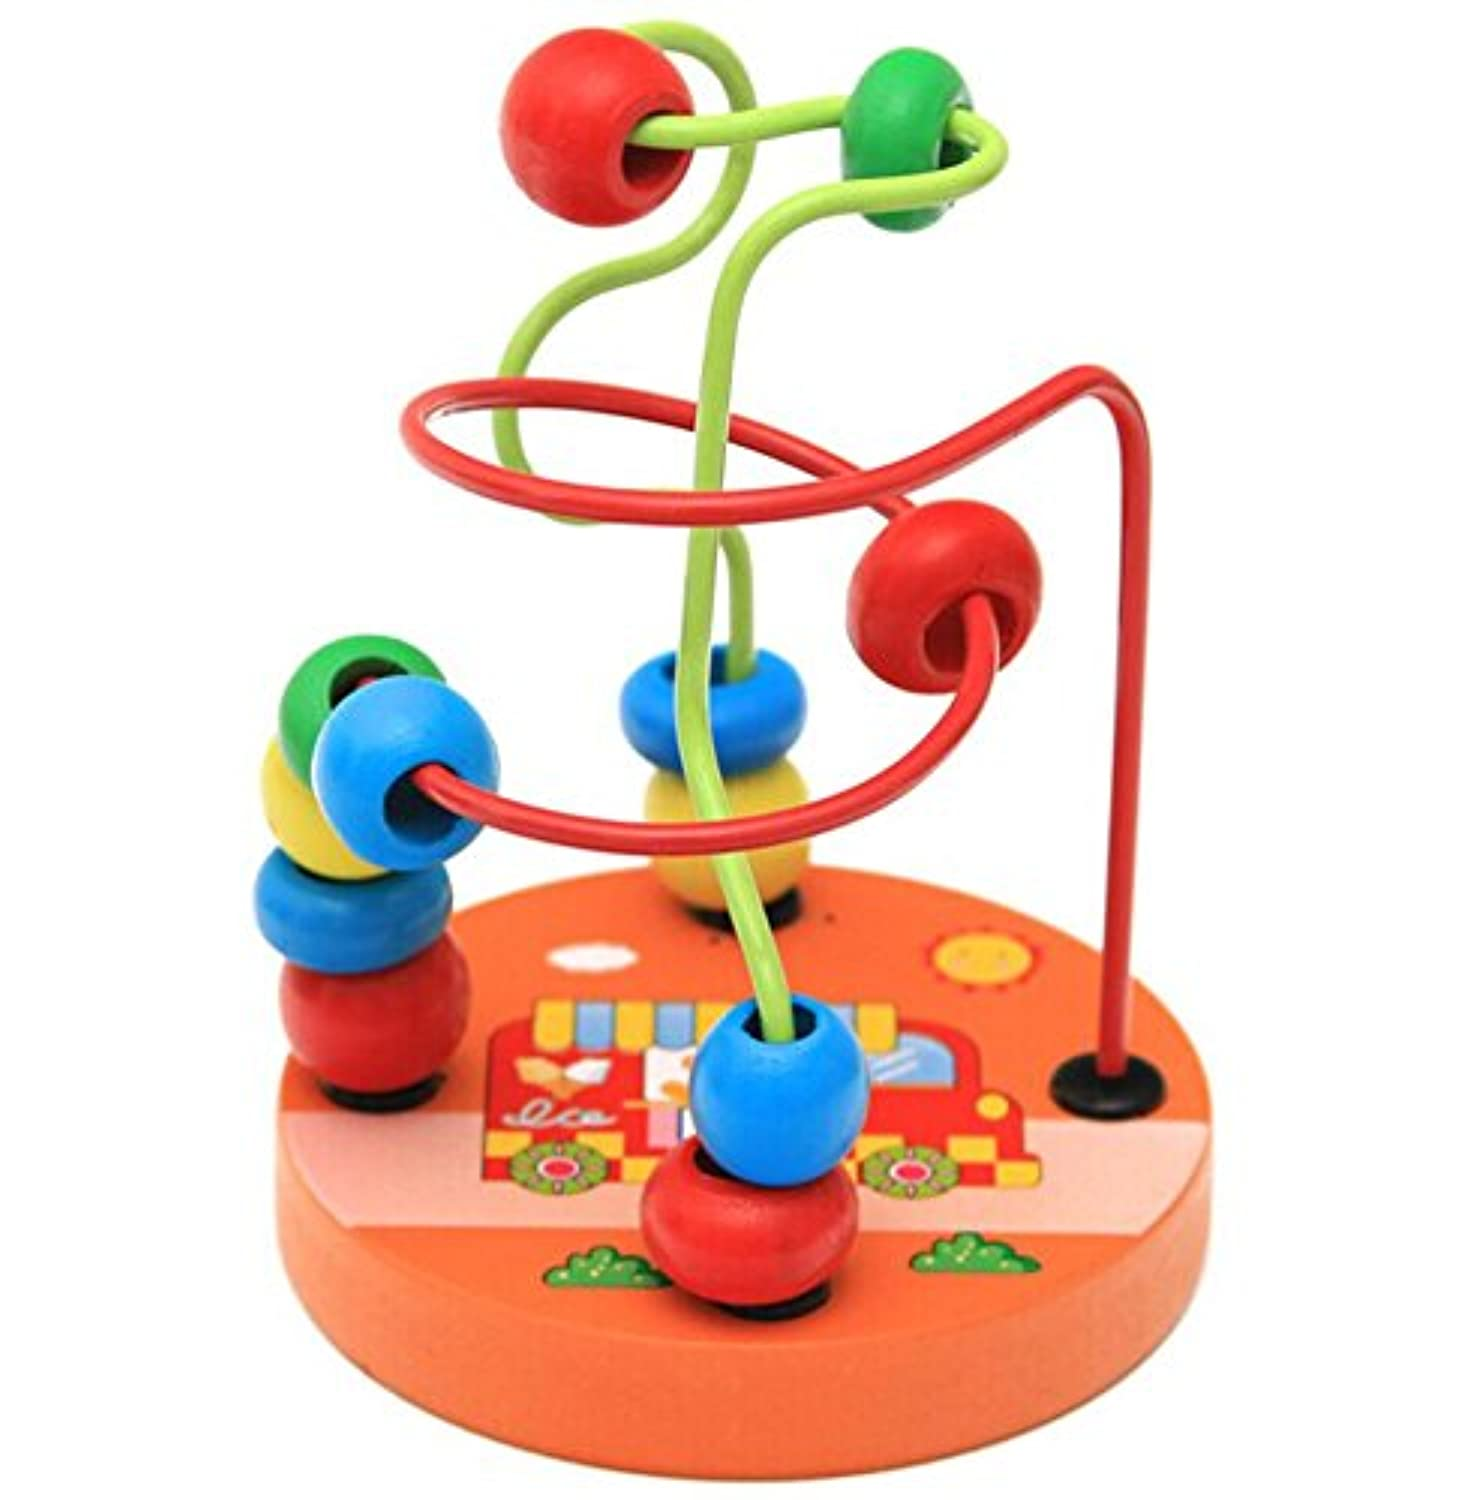 Mini Toddler Baby Educational Wooden Circle Bead Maze Game Intelligence Toys